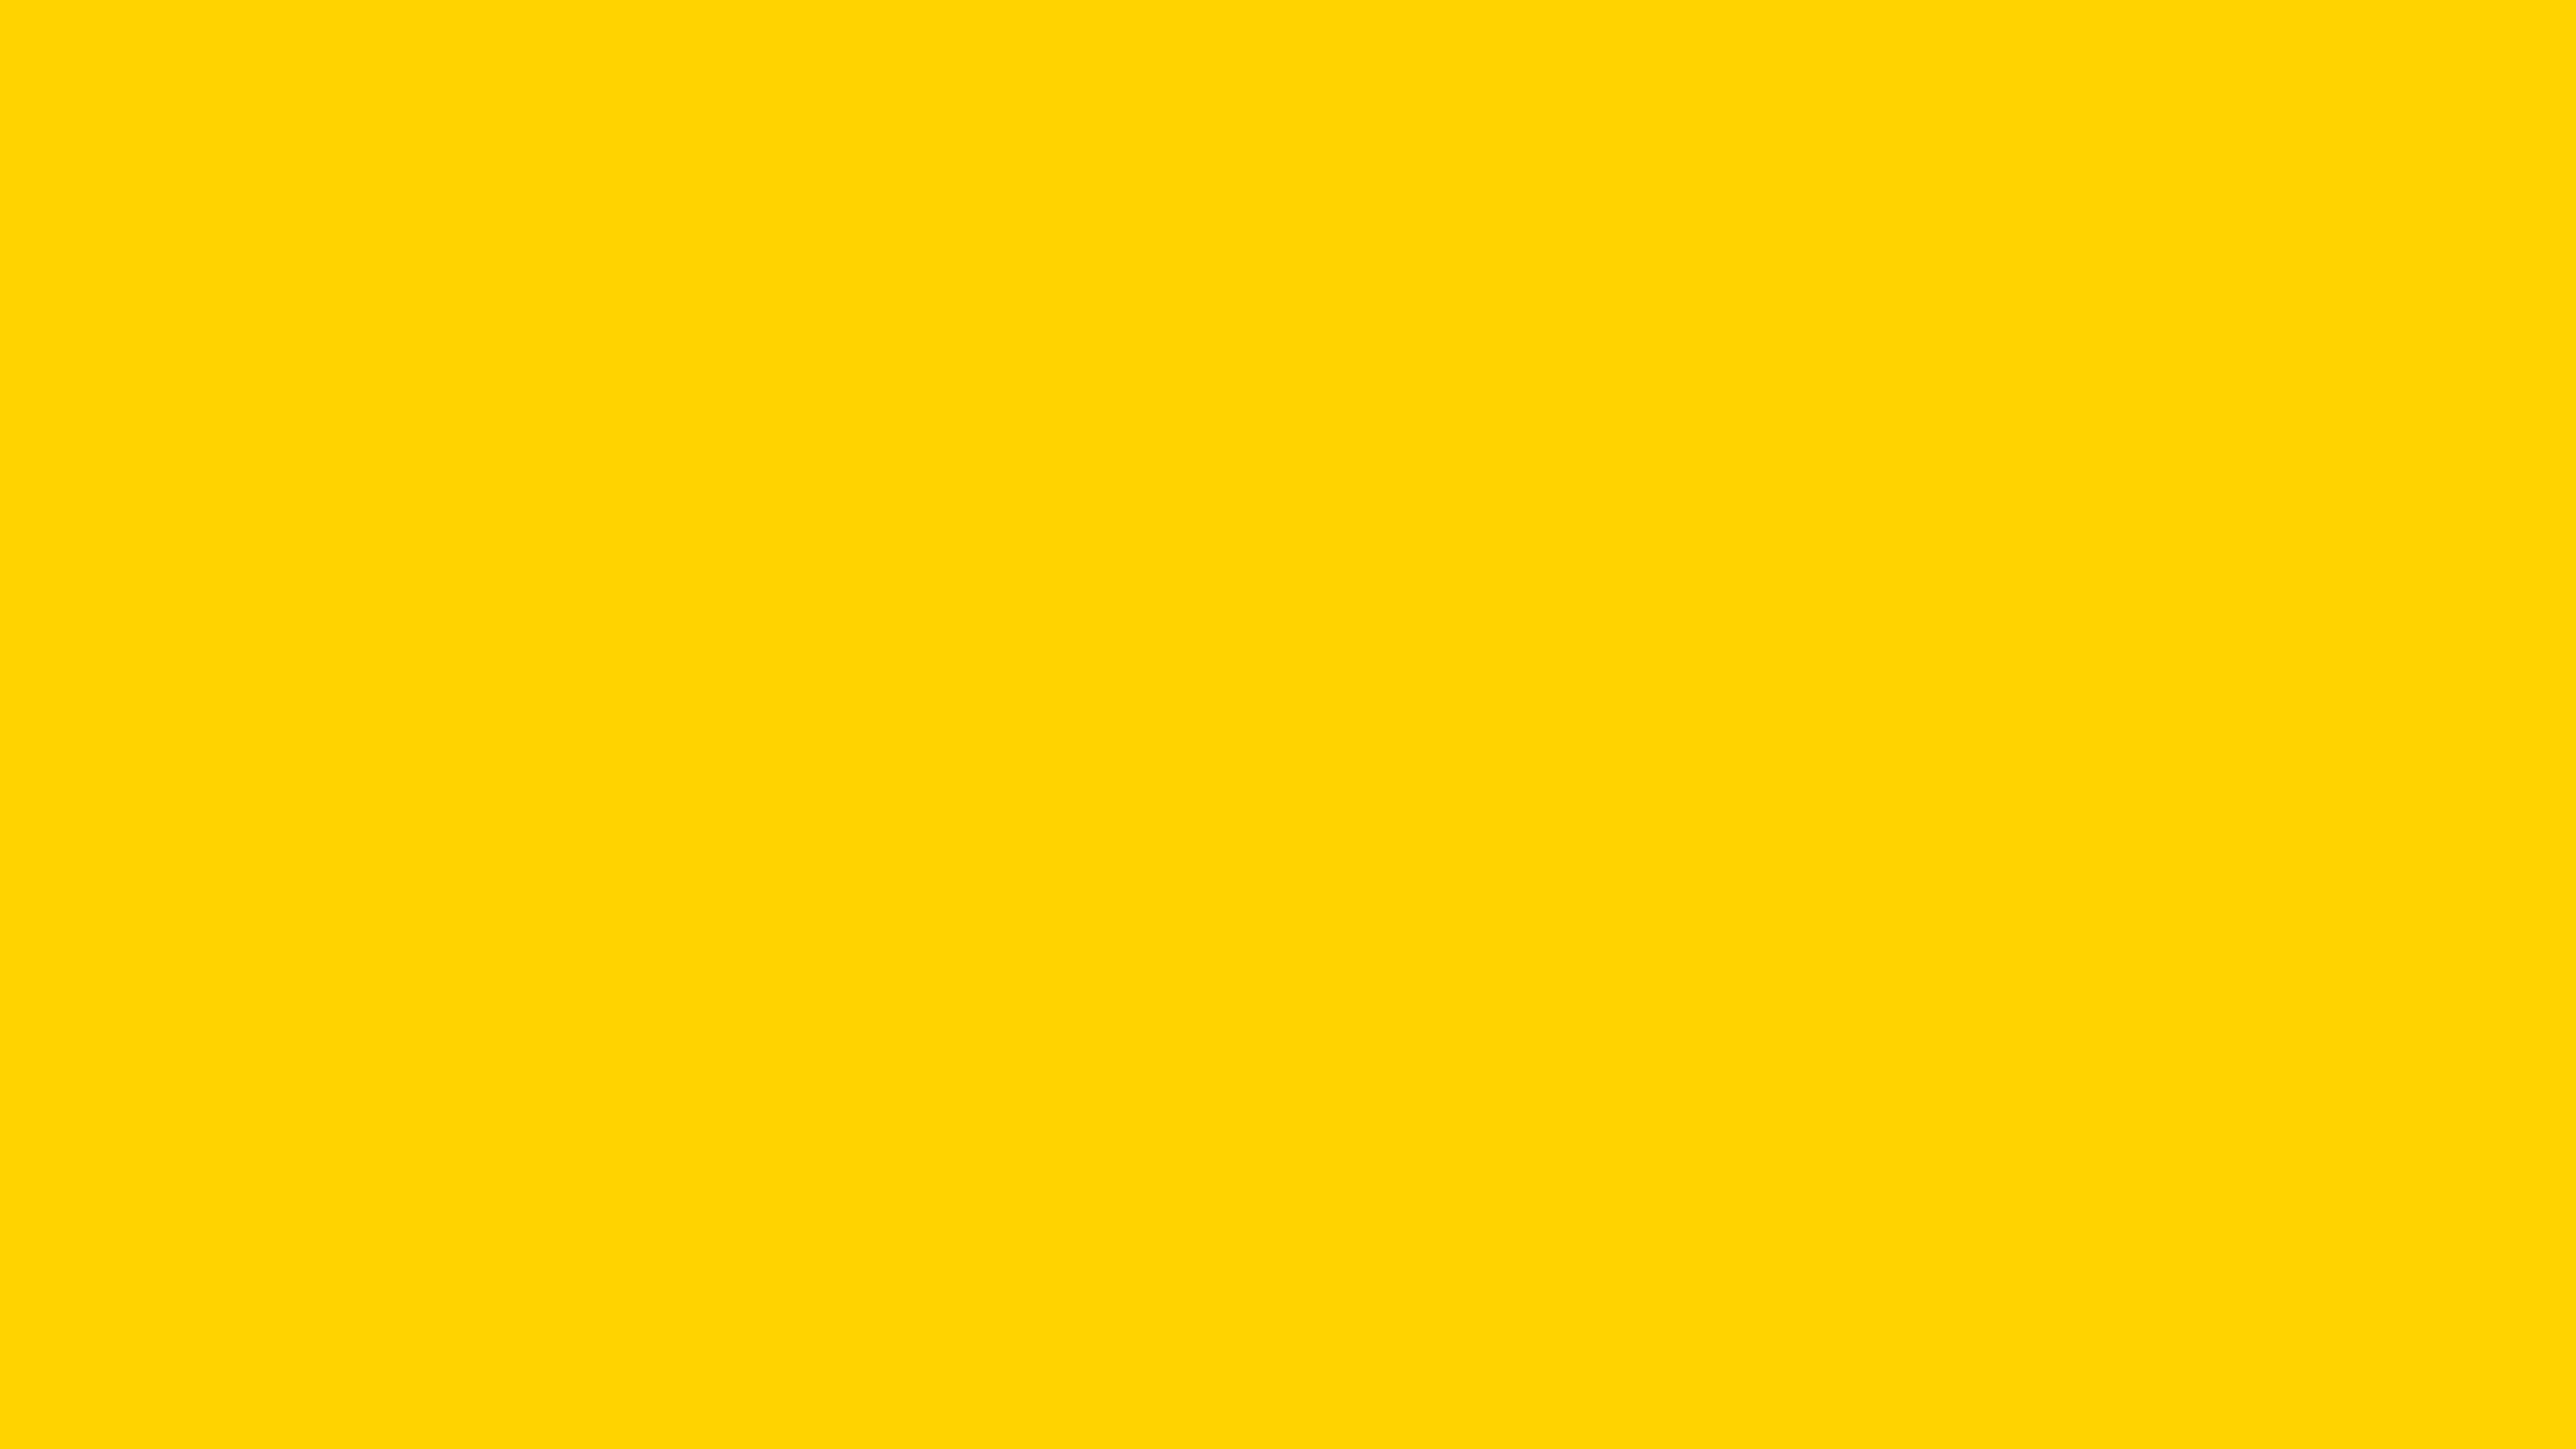 4096x2304 Yellow NCS Solid Color Background